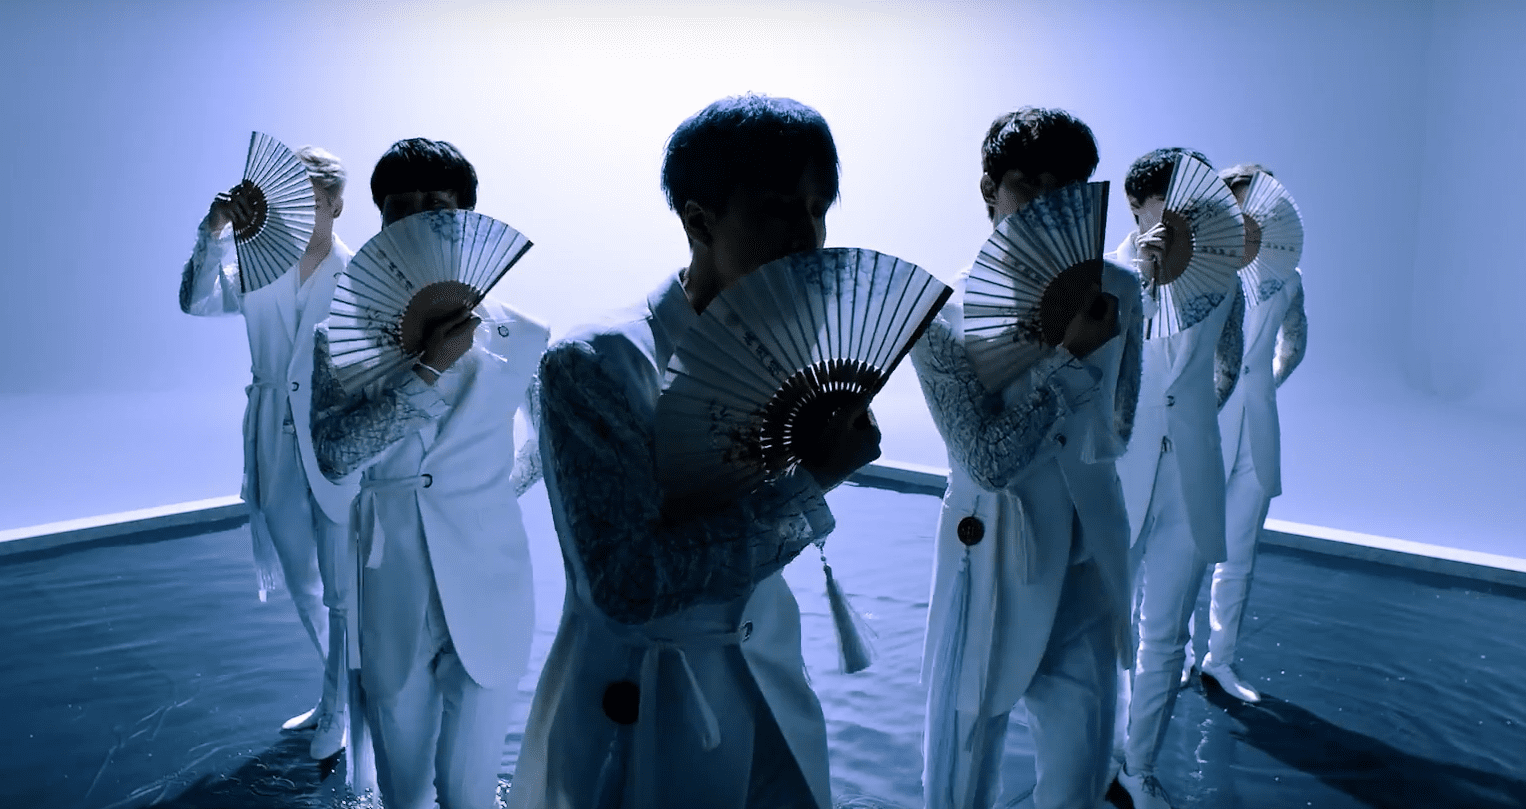 8 Of The Best Props And Objects Used In Kpop Choreography